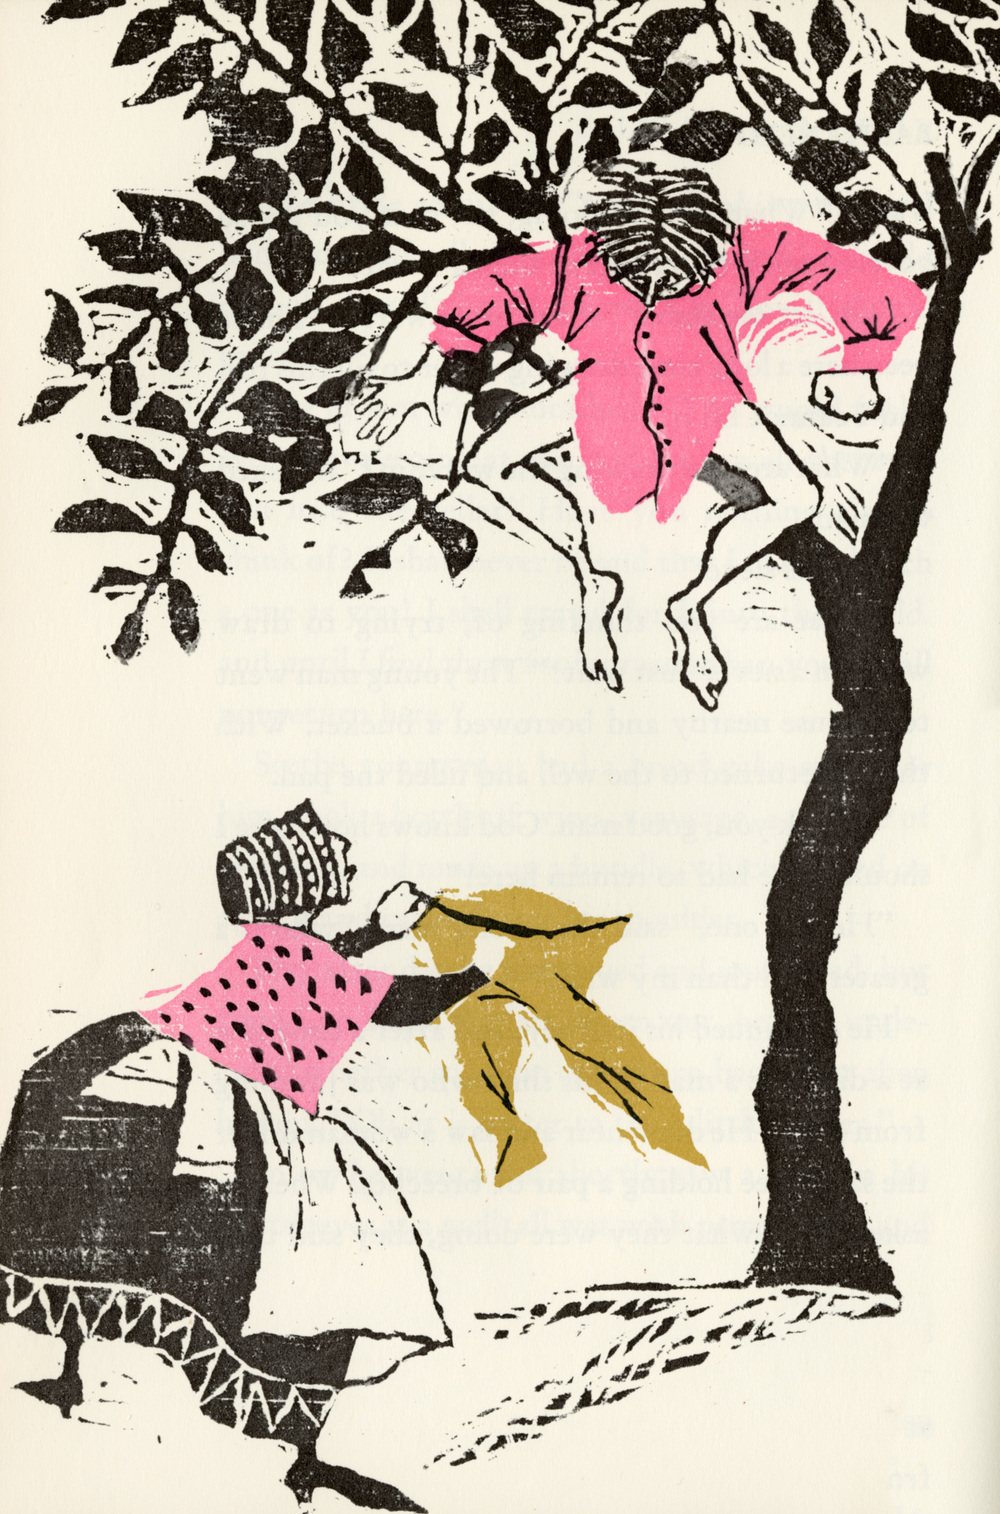 Evaline Ness, illustration from Favorite Fairy Tales Told in Italy. 1965